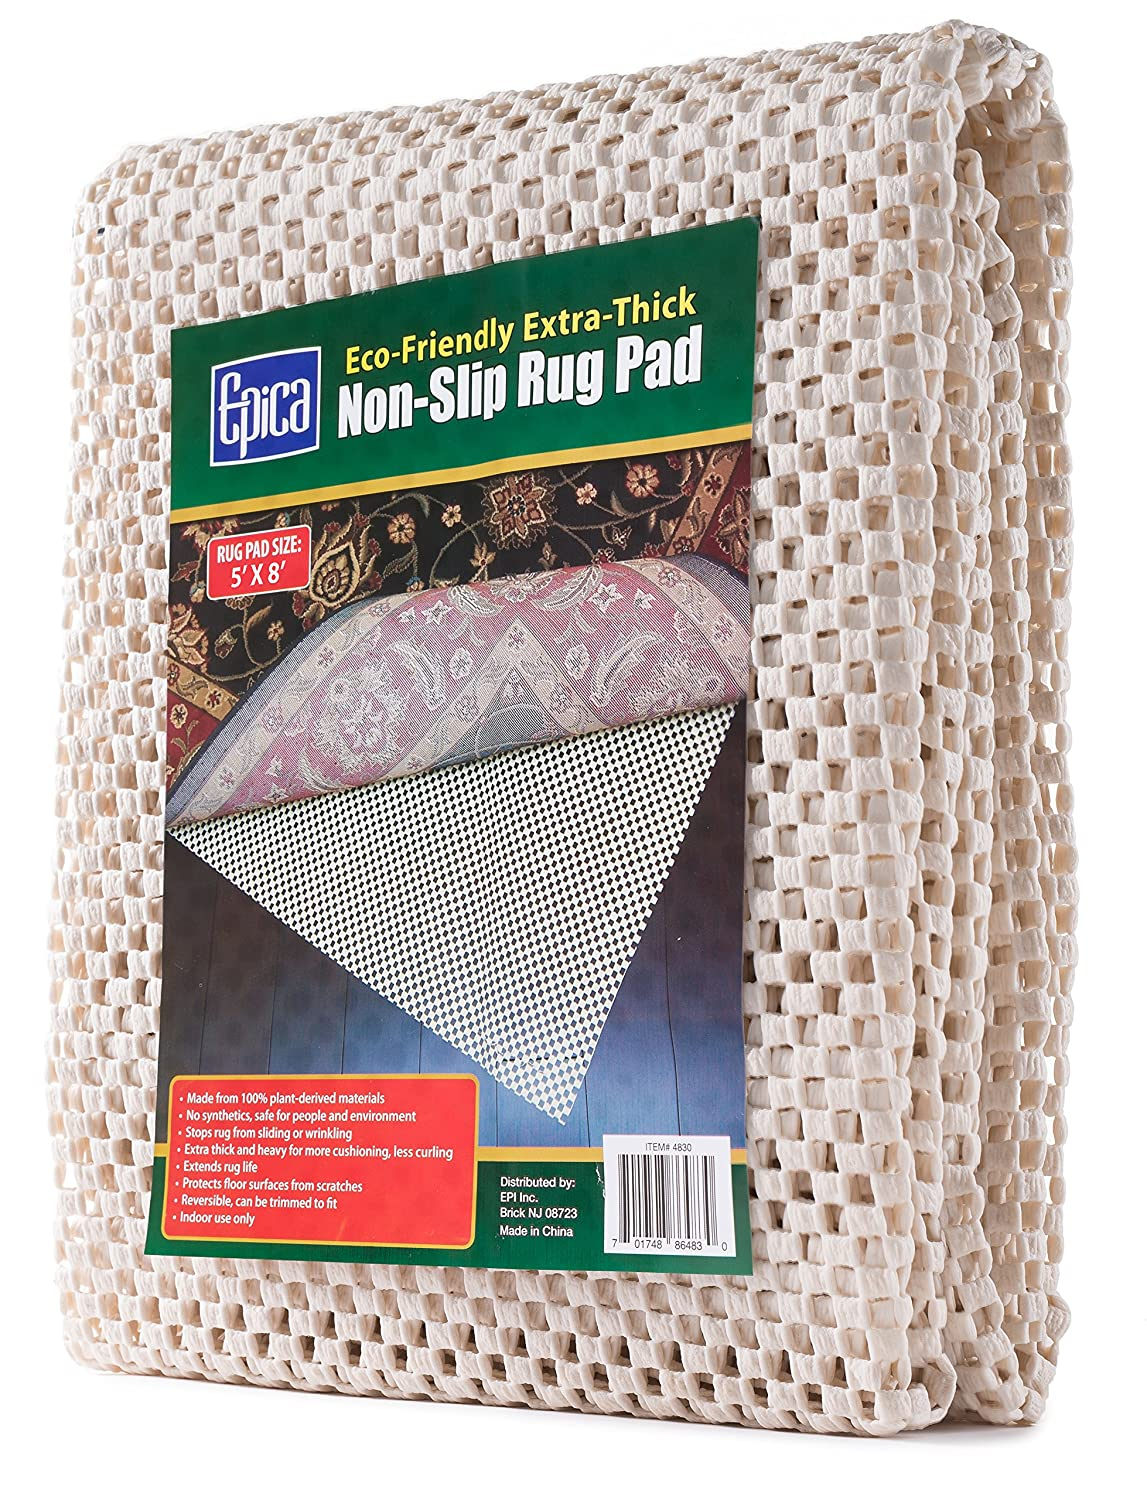 Amazon.com: Epica Super Grip Non Slip Area Rug Pad 5 X 8 For Any Hard  Surface Floor, Keeps Your Rugs Safe And In Place: Kitchen U0026 Dining